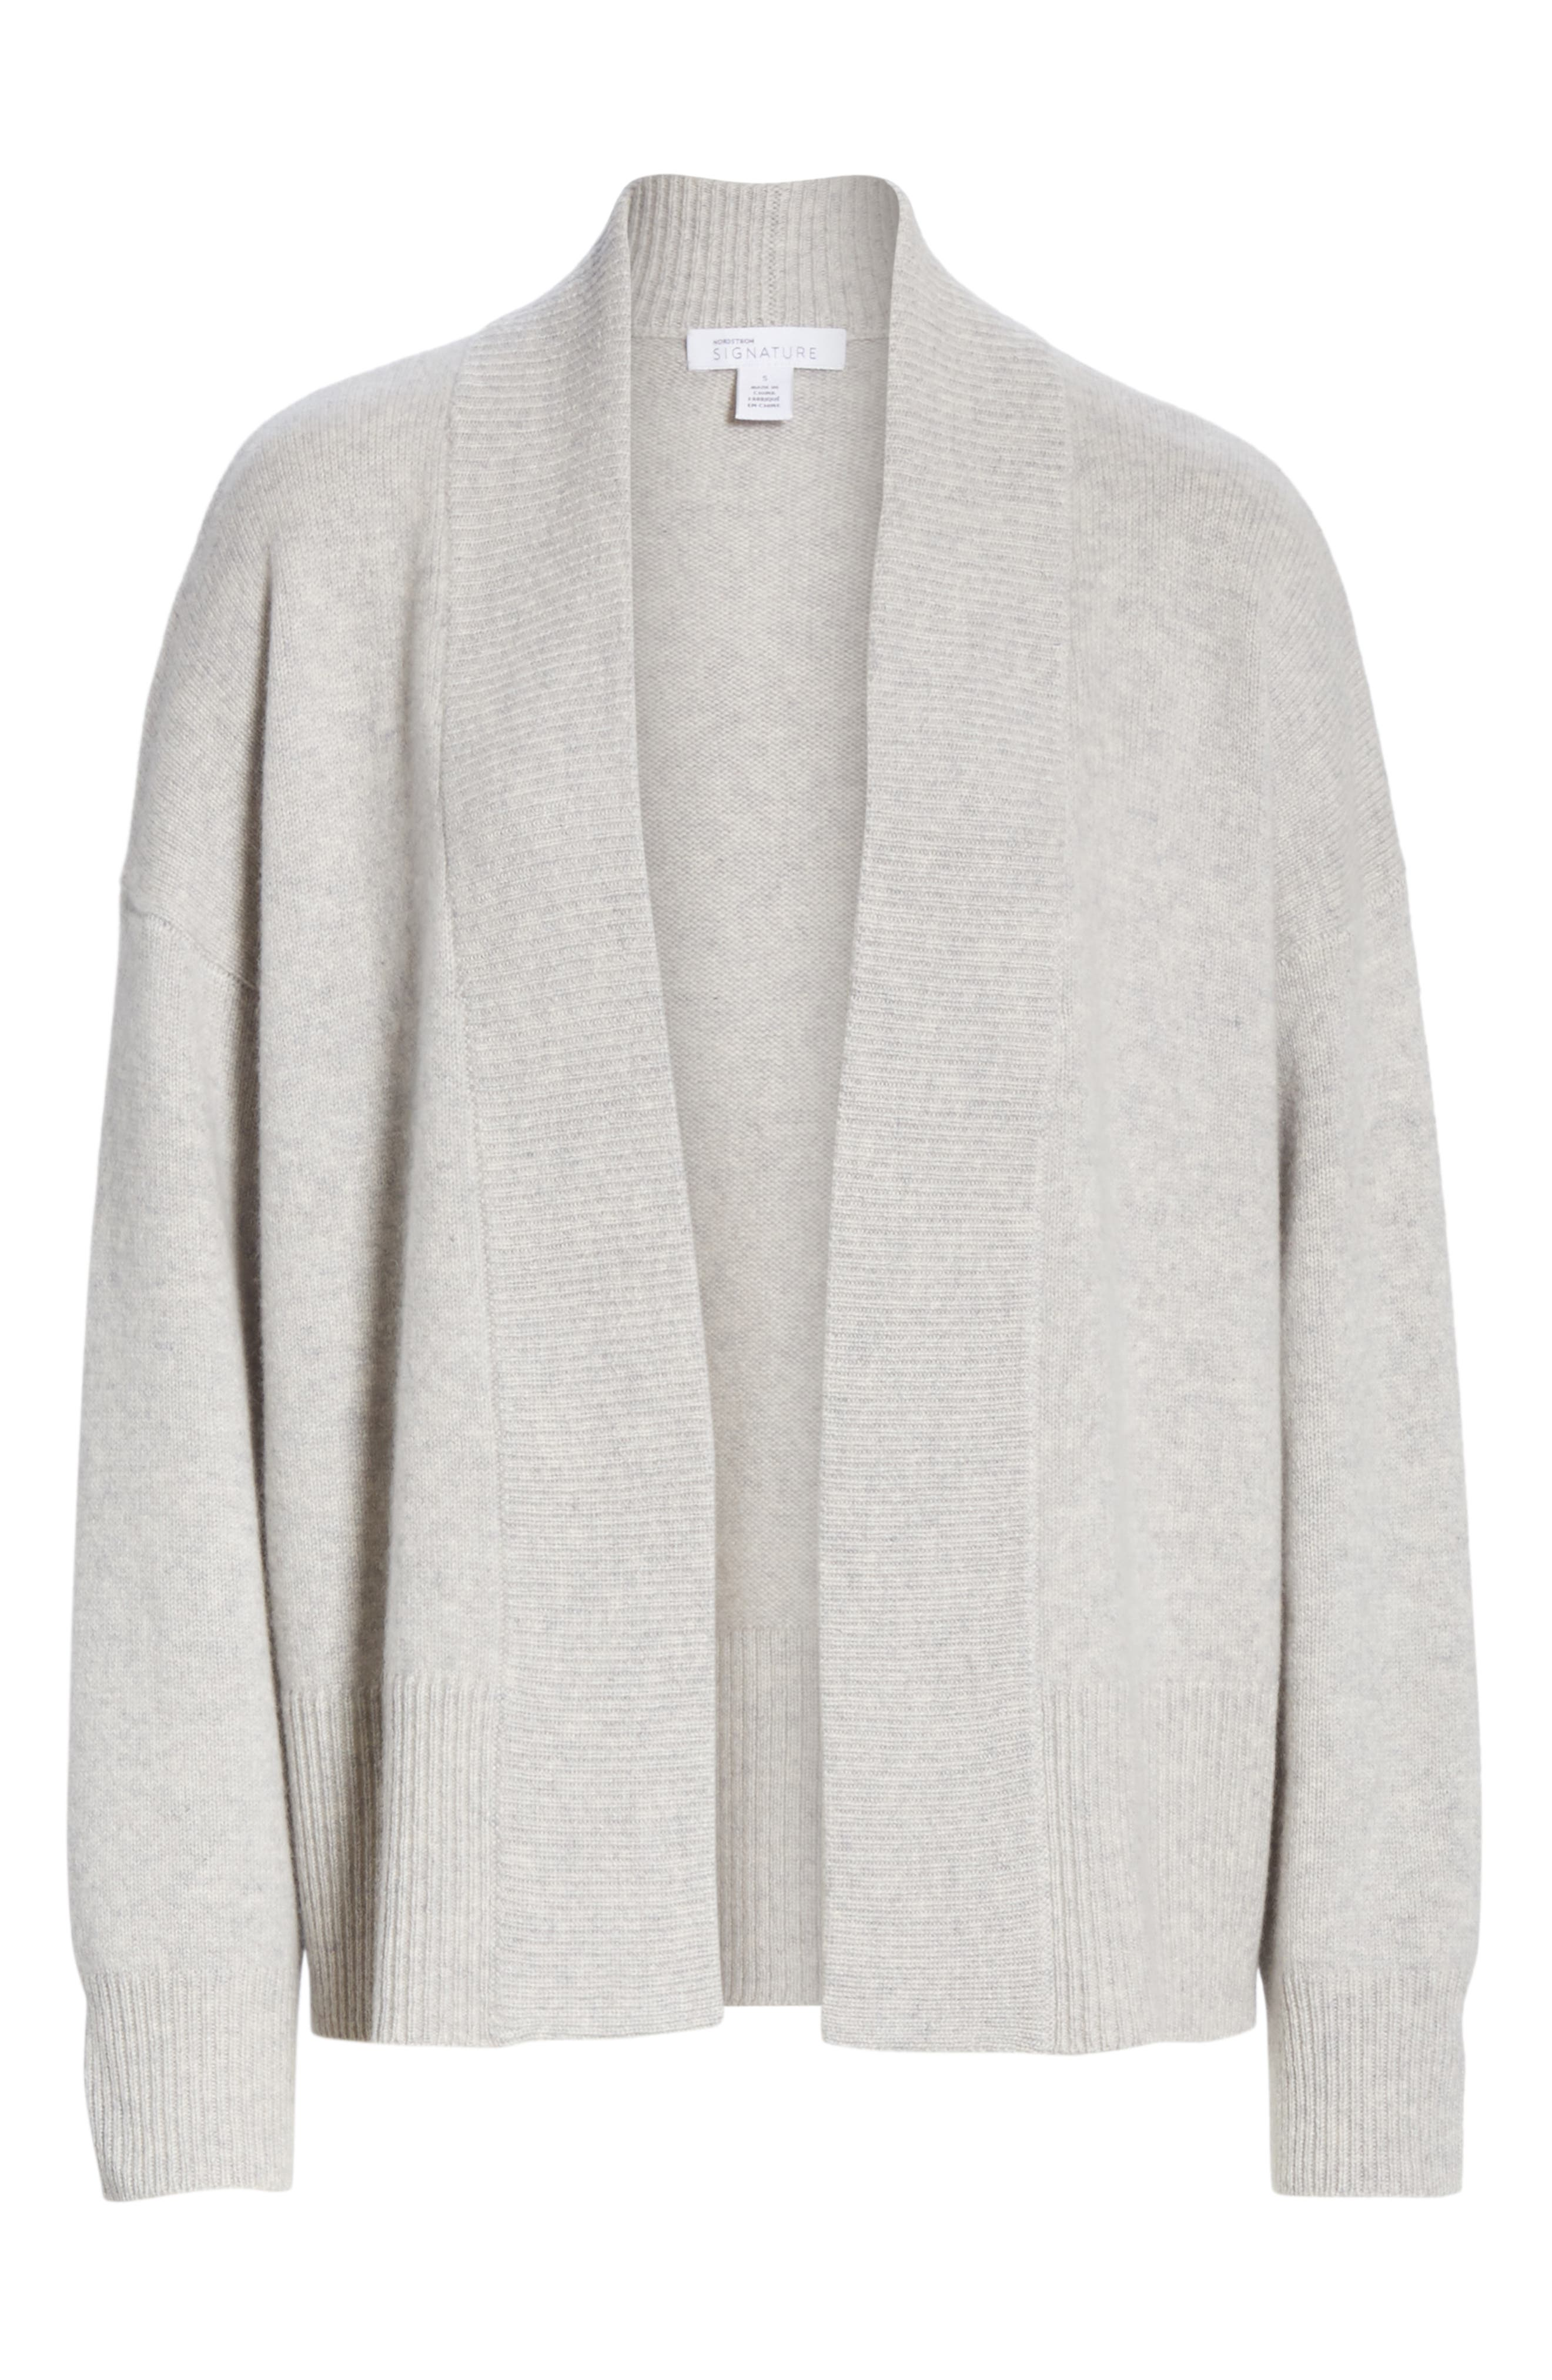 NORDSTROM SIGNATURE, Cashmere Blend Cardigan, Alternate thumbnail 6, color, GREY CLAY HEATHER